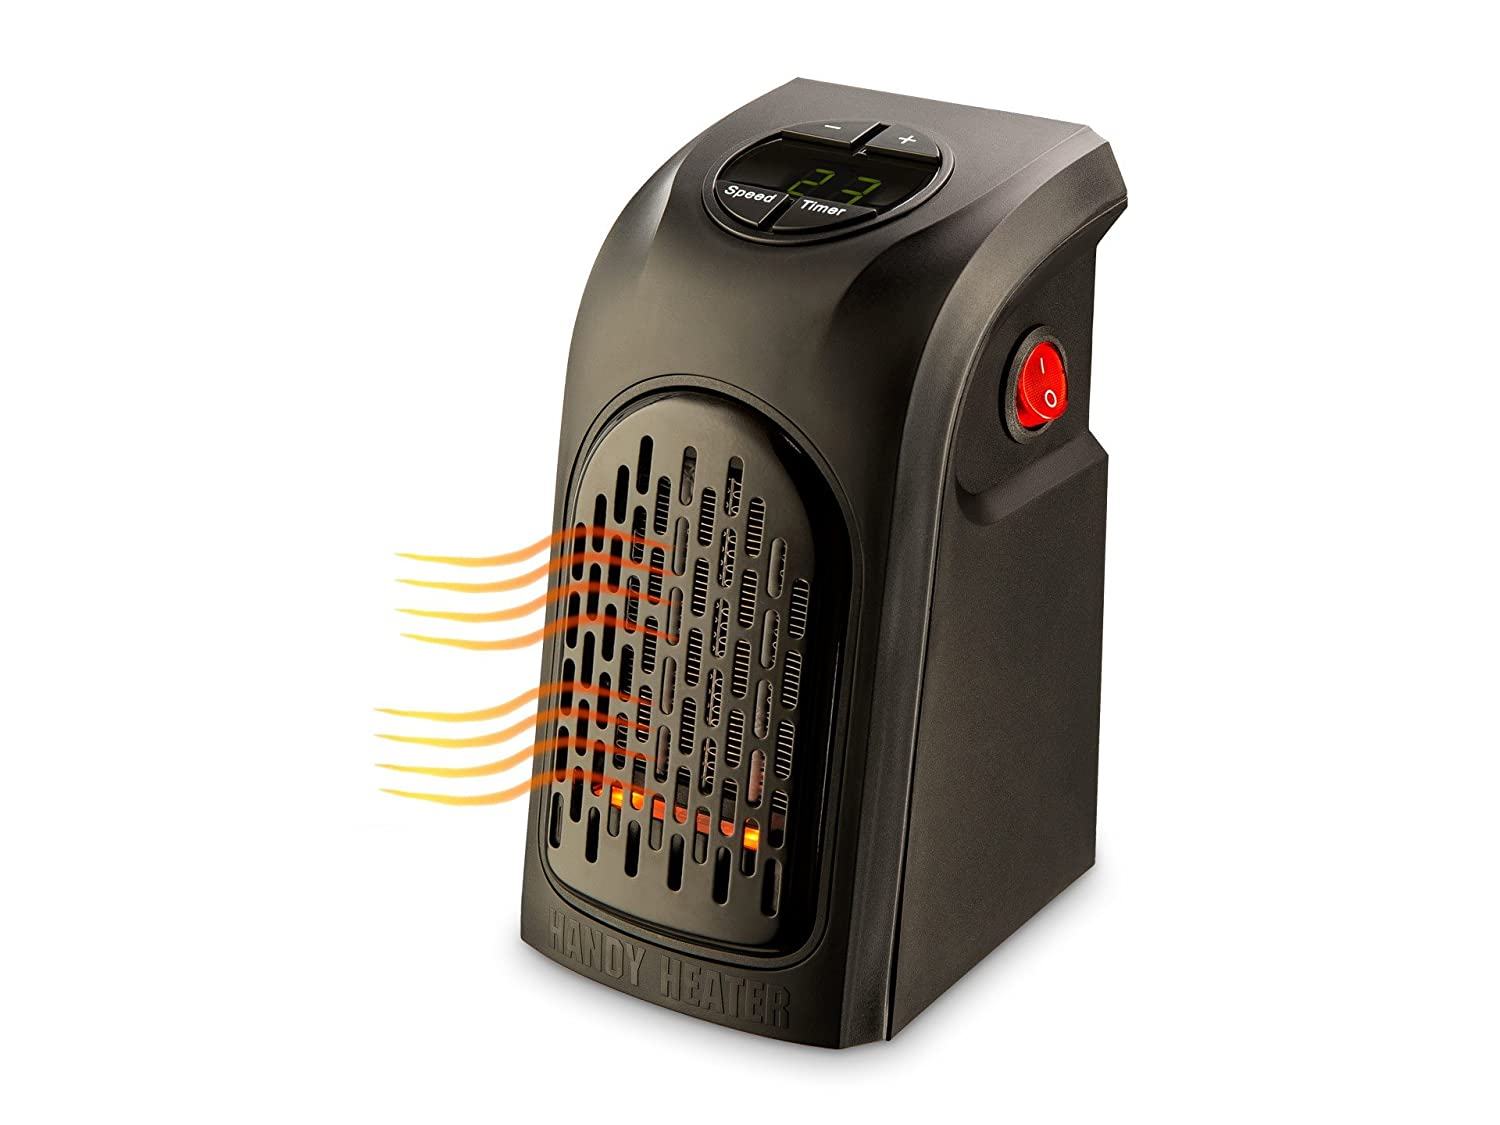 Mini estufa «Handy Power Heater» de bajo consumo pero potente: Amazon.es: Hogar